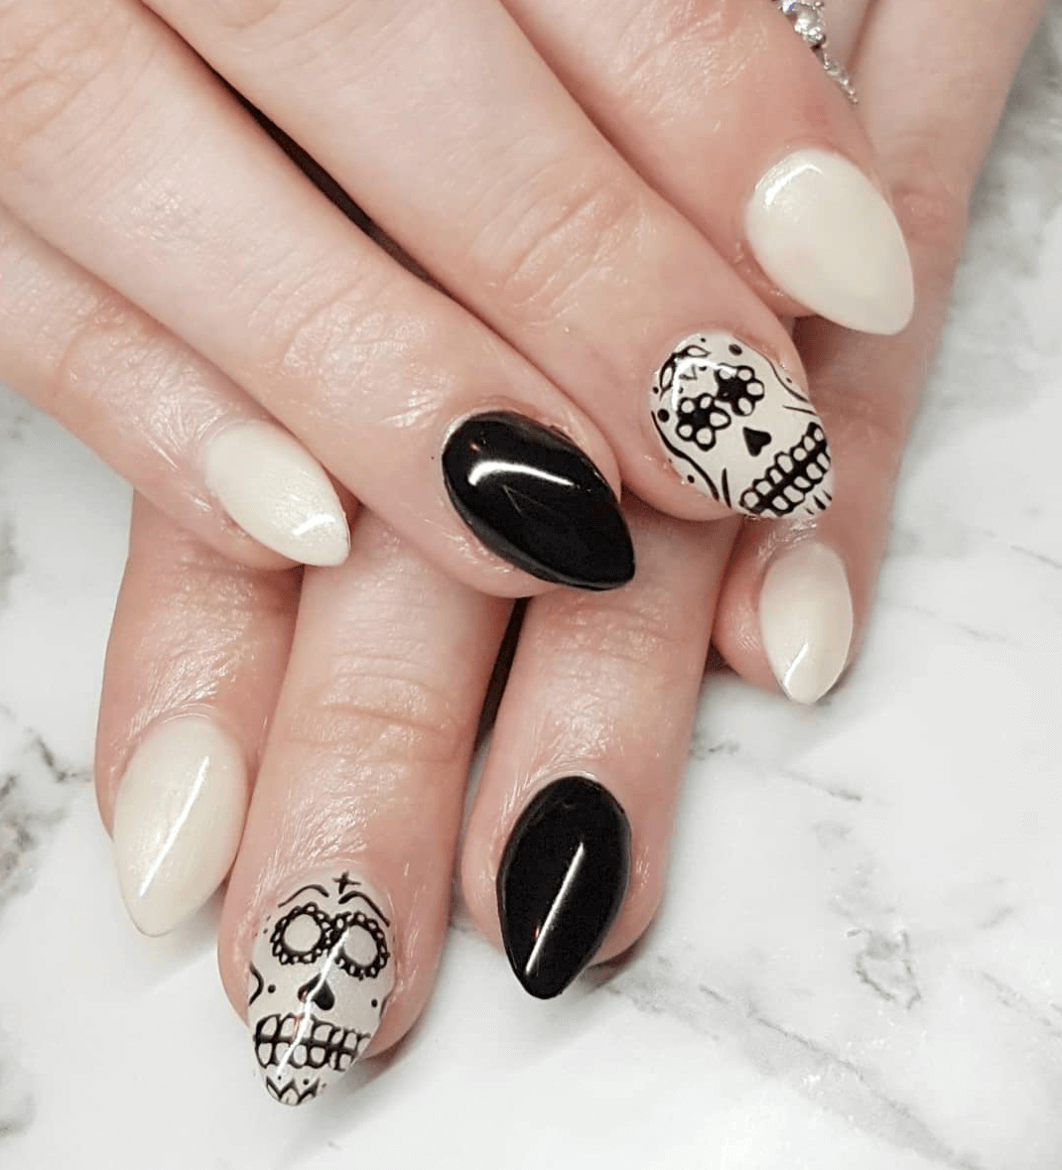 18 Spooky, Creepy And Scary Halloween Nail Designs